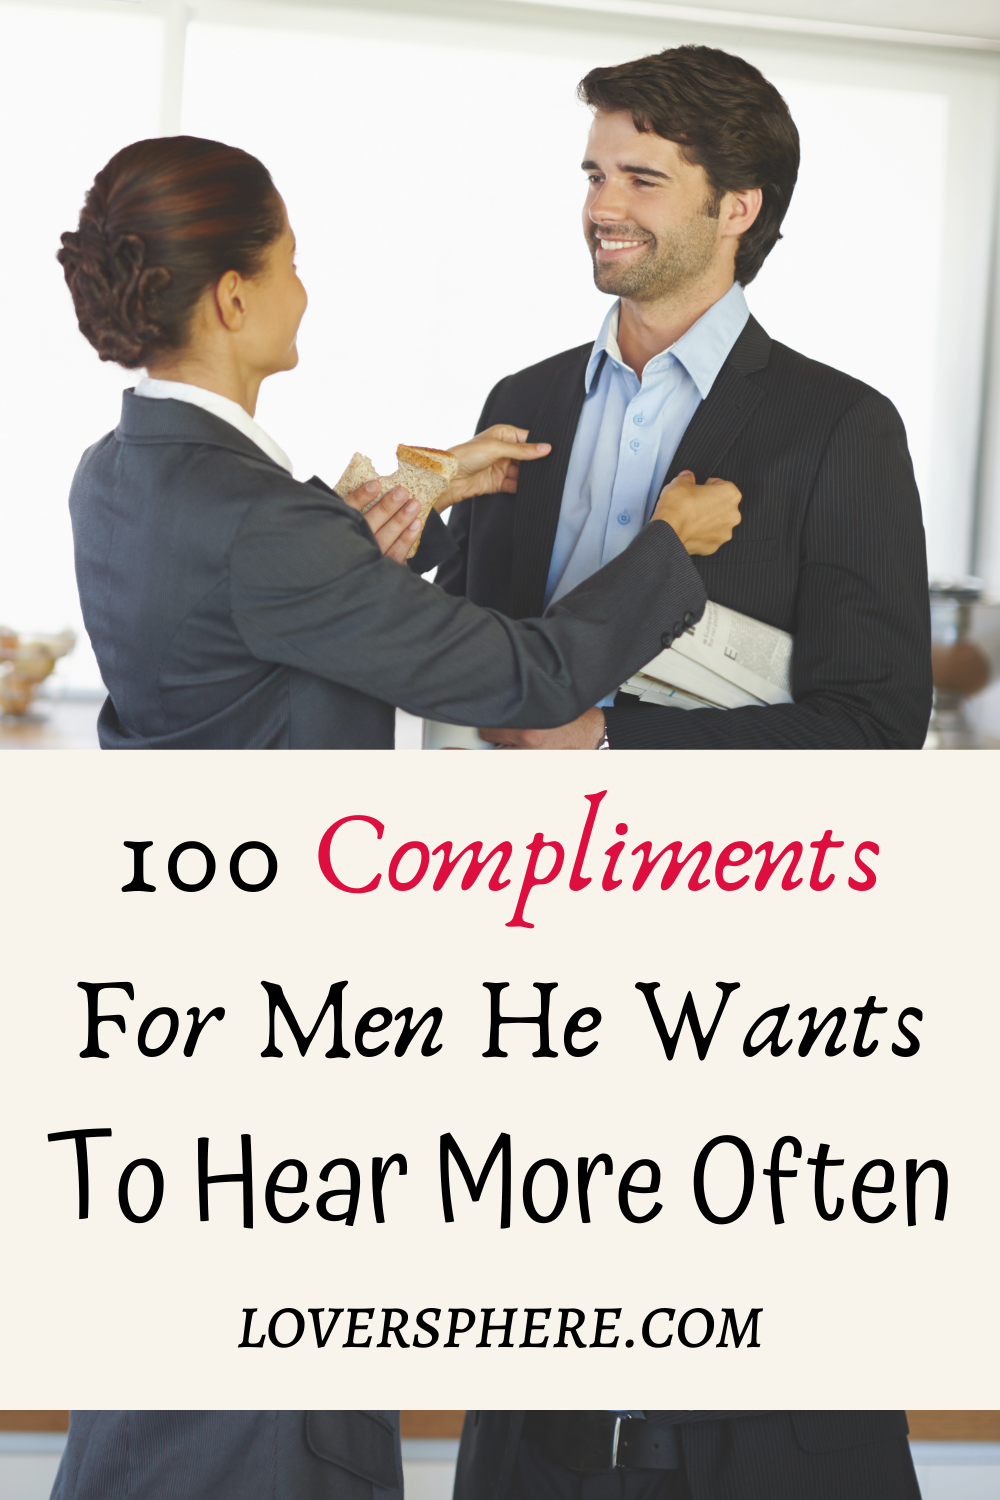 100 Compliments For Men He Wants To Hear More Often